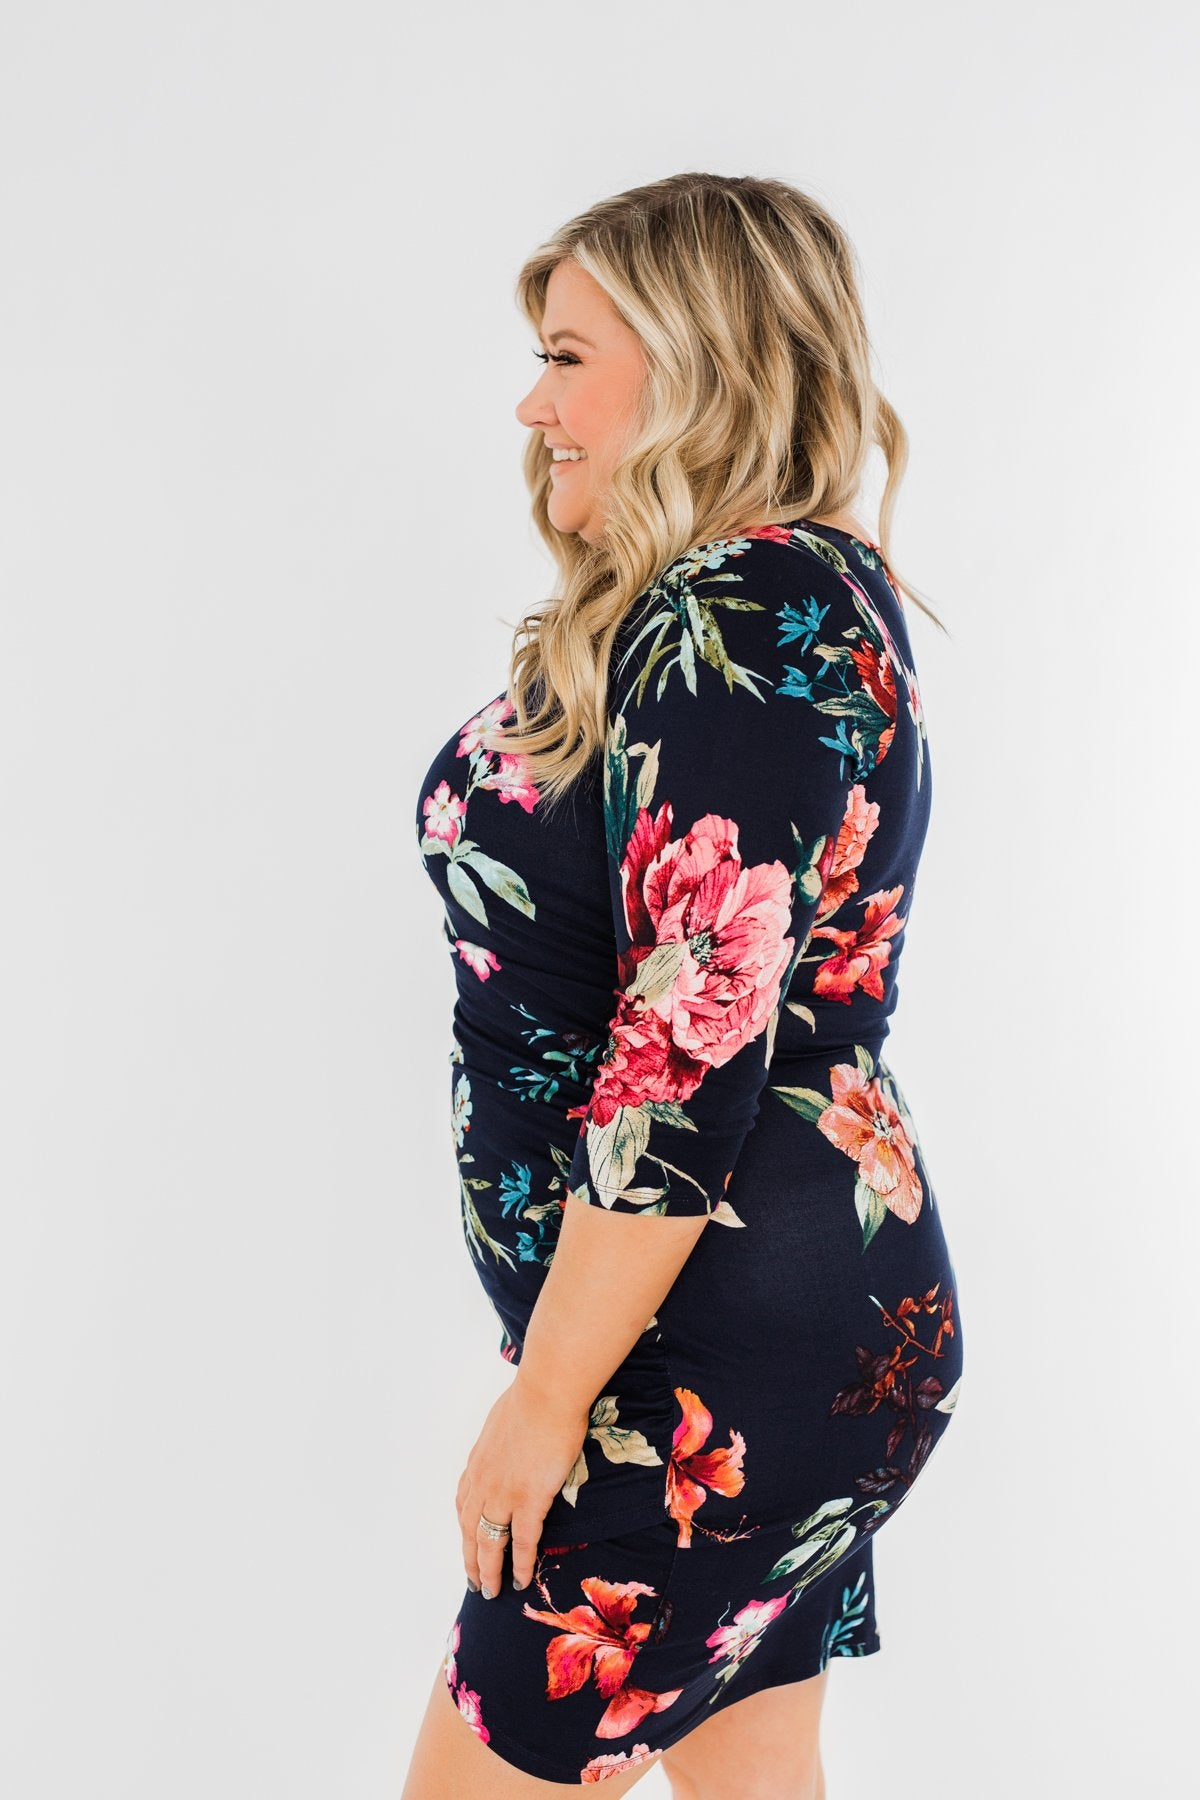 Captivating In Floral Dress- Navy